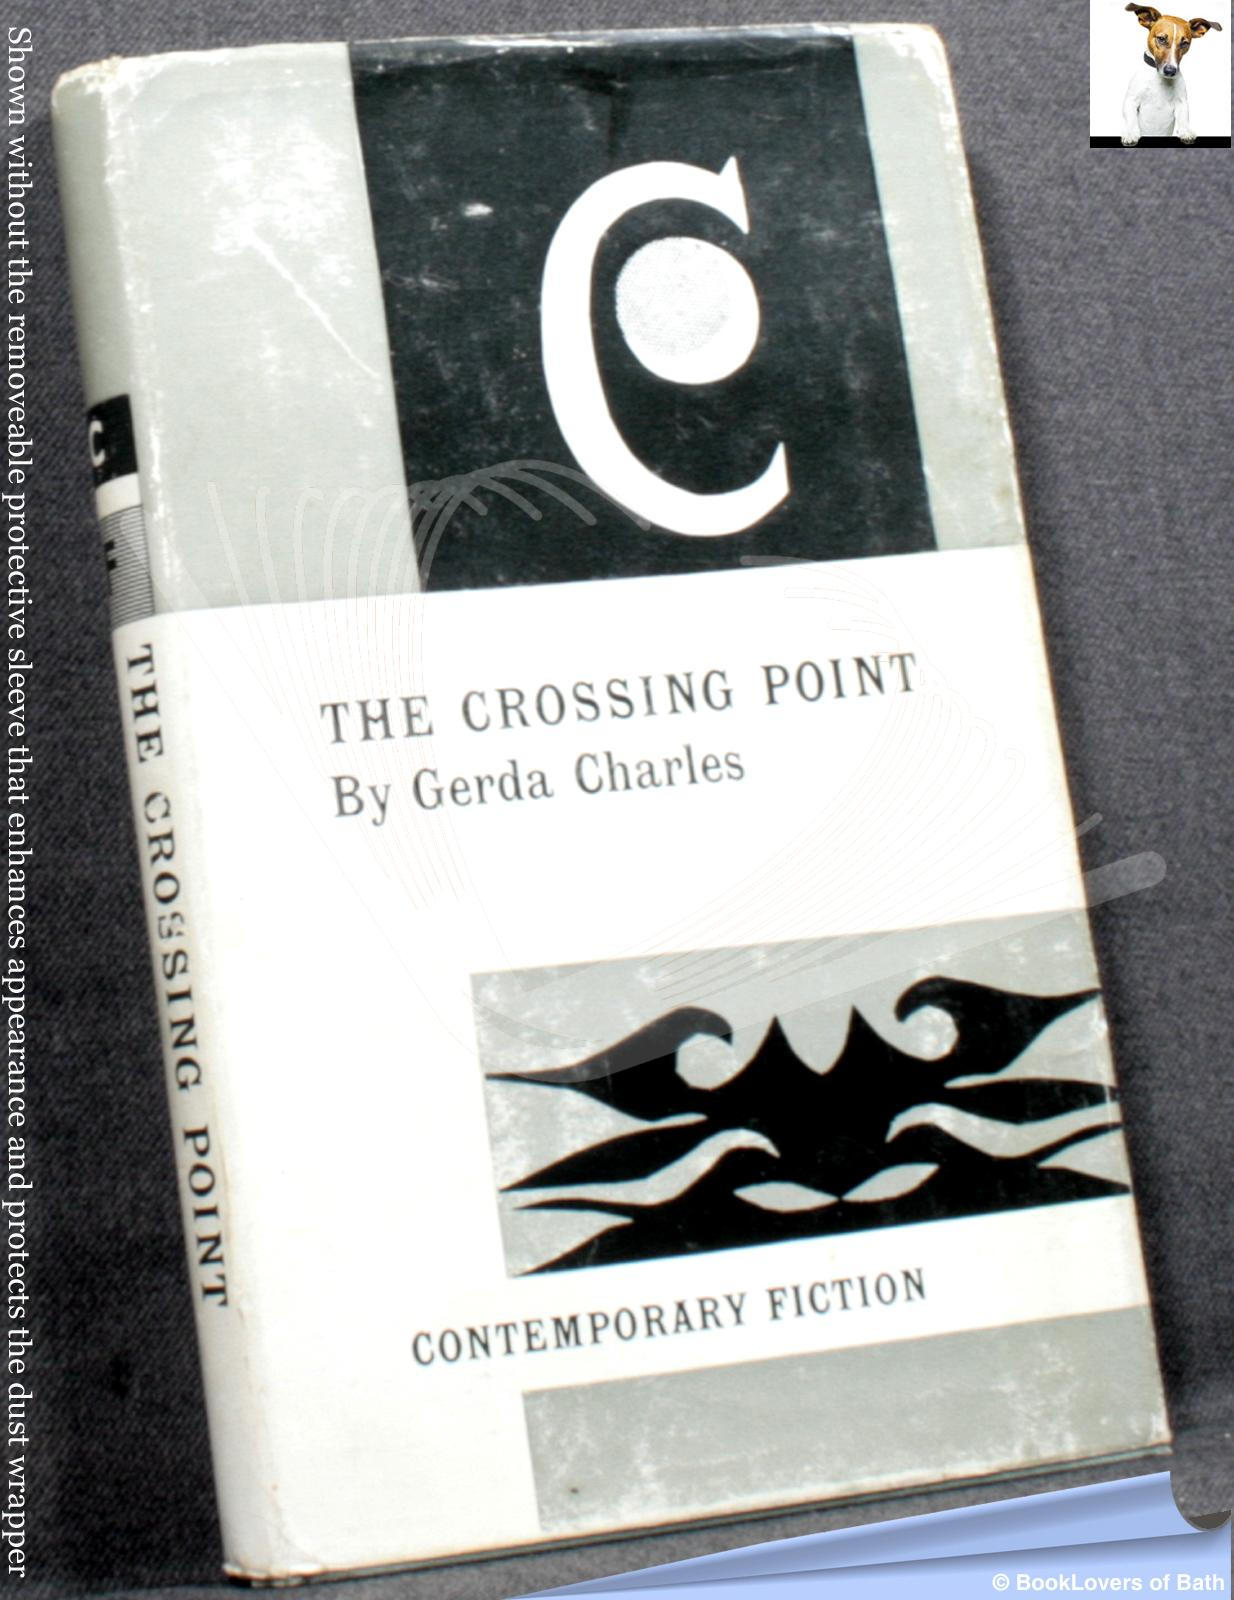 The Crossing Point - Gerda Charles